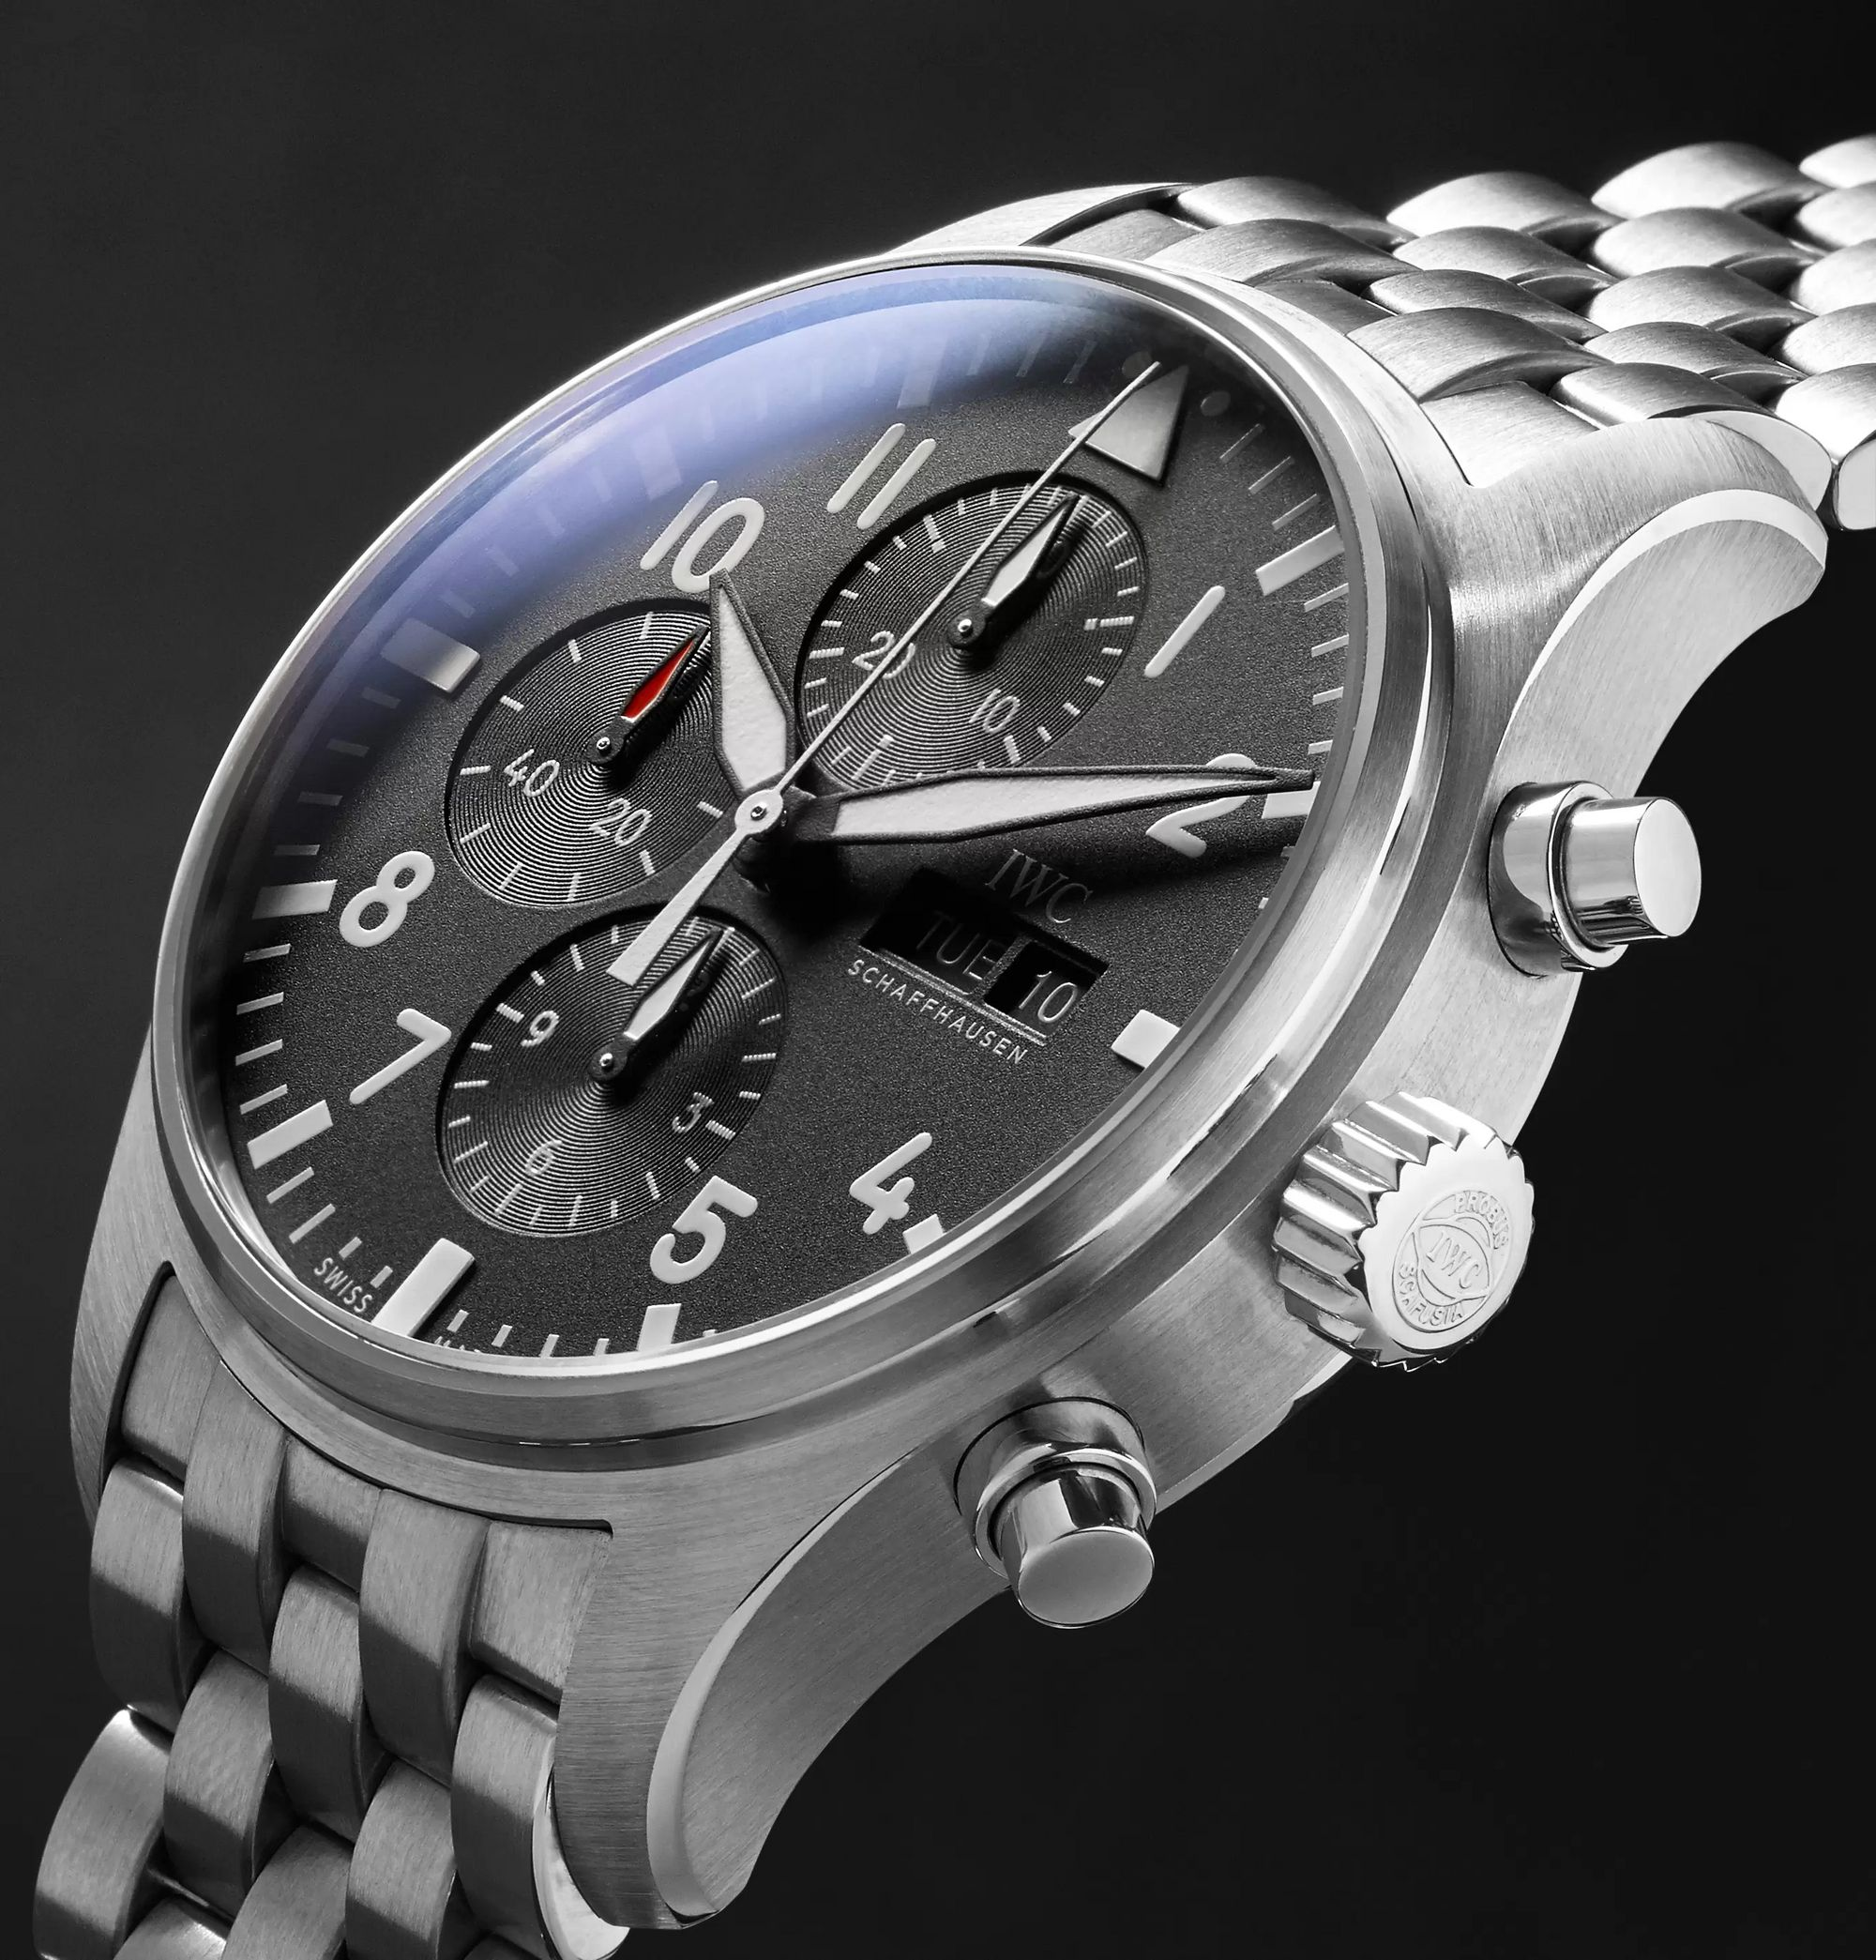 IWC SCHAFFHAUSEN Pilot's Chronograph 43mm Stainless Steel Watch, Ref. No. IW377710